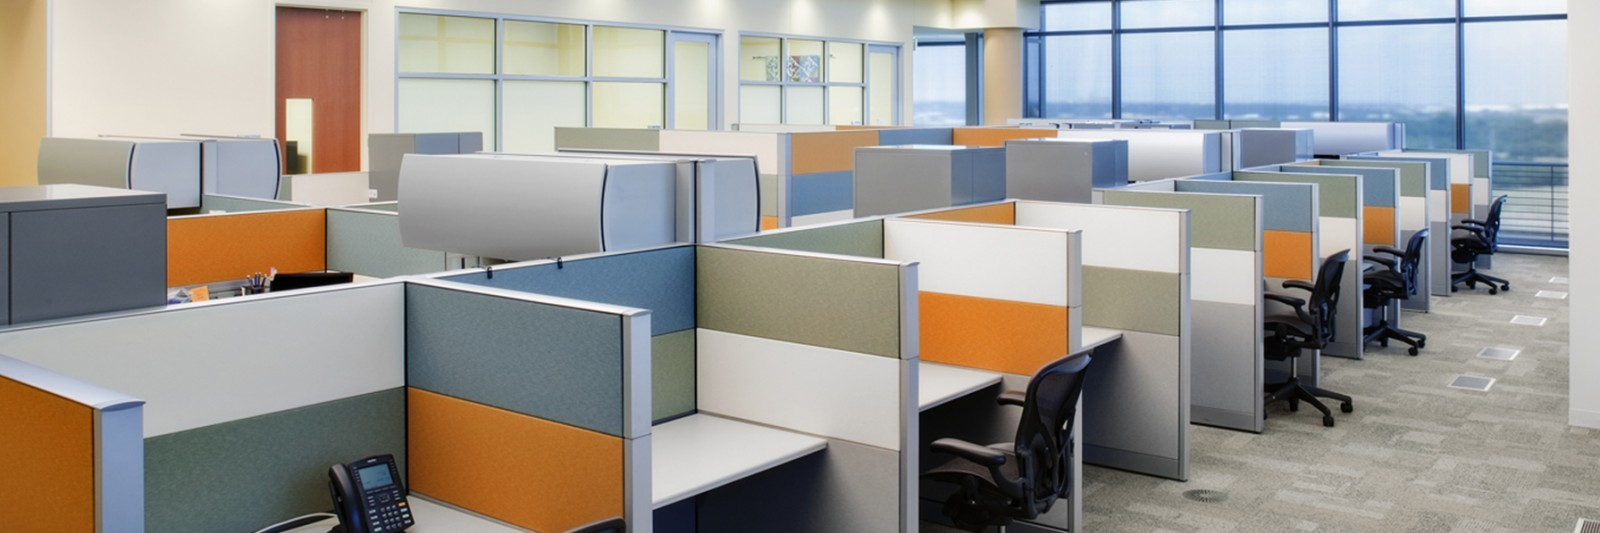 Demand for Creative Office Space High  The Beck Group